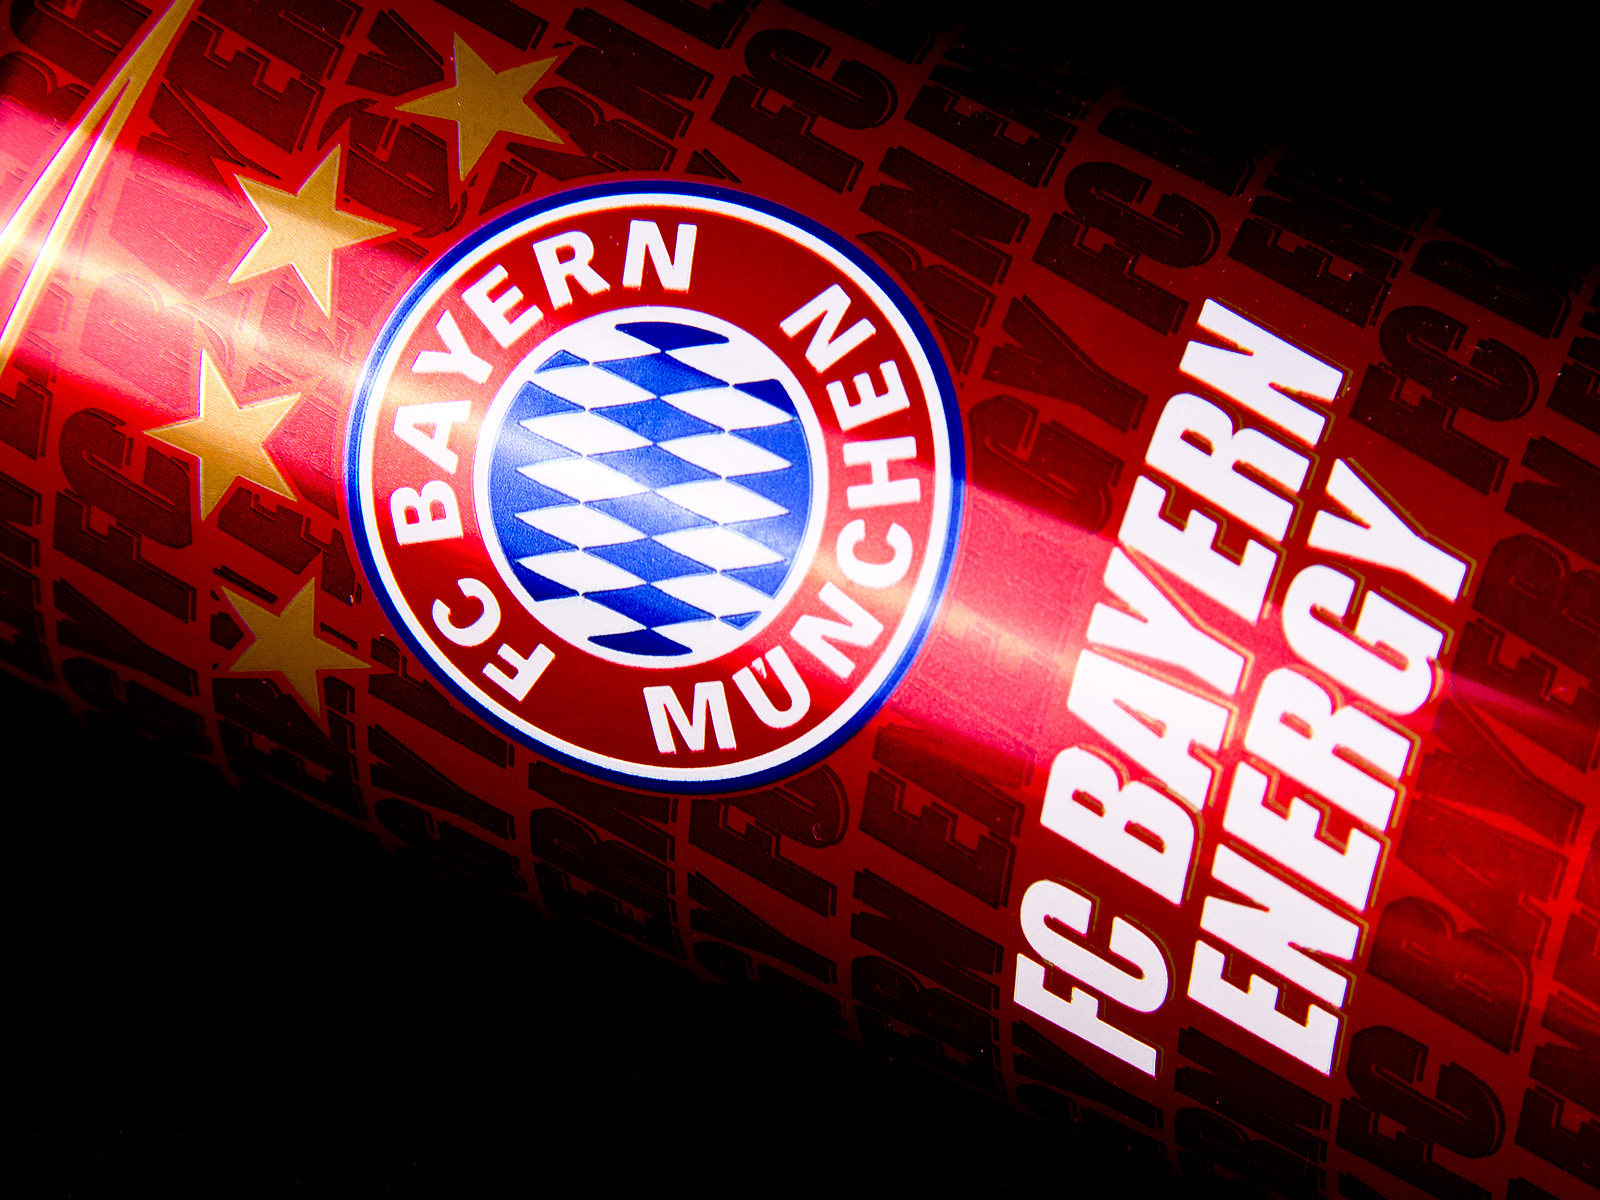 97 Fc Bayern Munich 2017 Wallpapers On Wallpapersafari